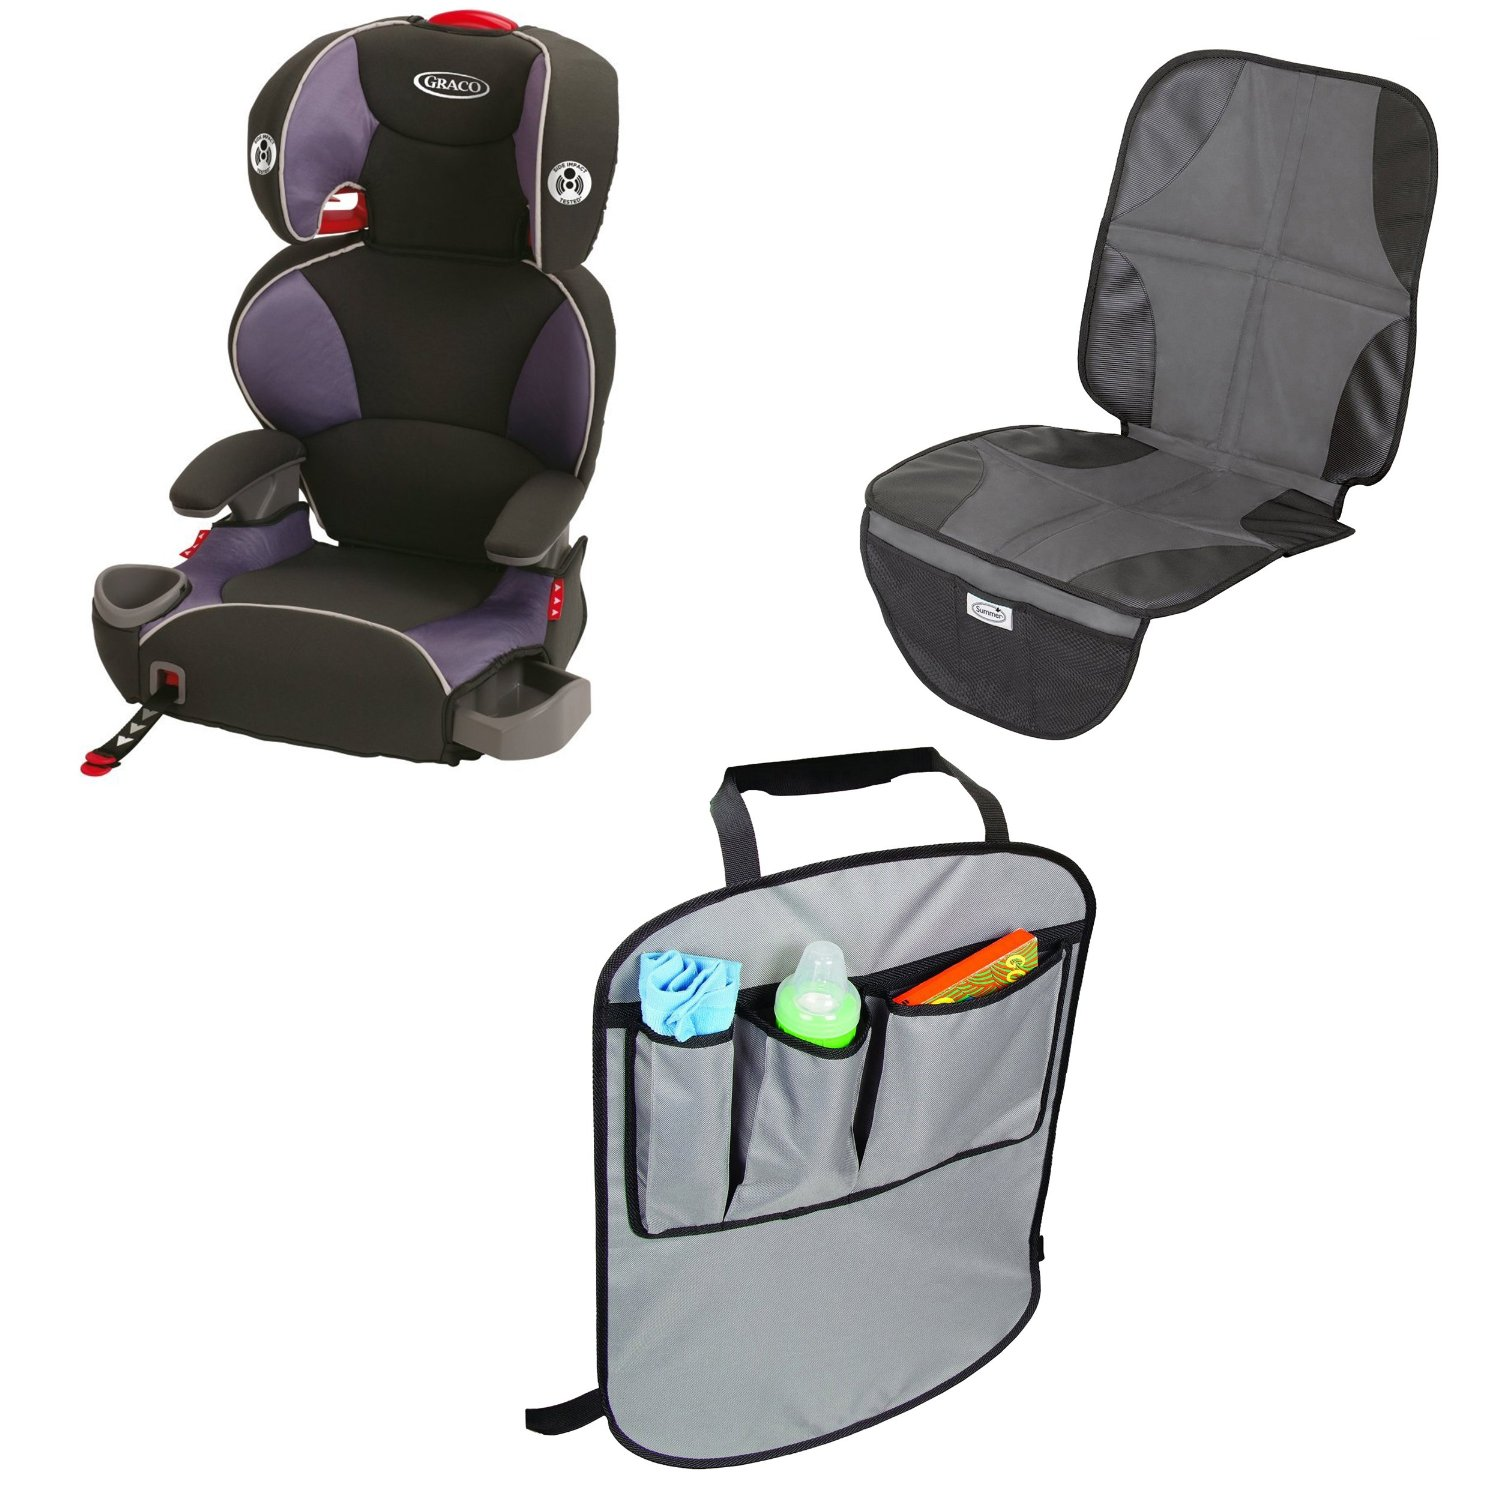 Graco AFFIX Youth Booster Seat with Latch System & Car Seat Mat and Backseat Kick Protectors, Atomic